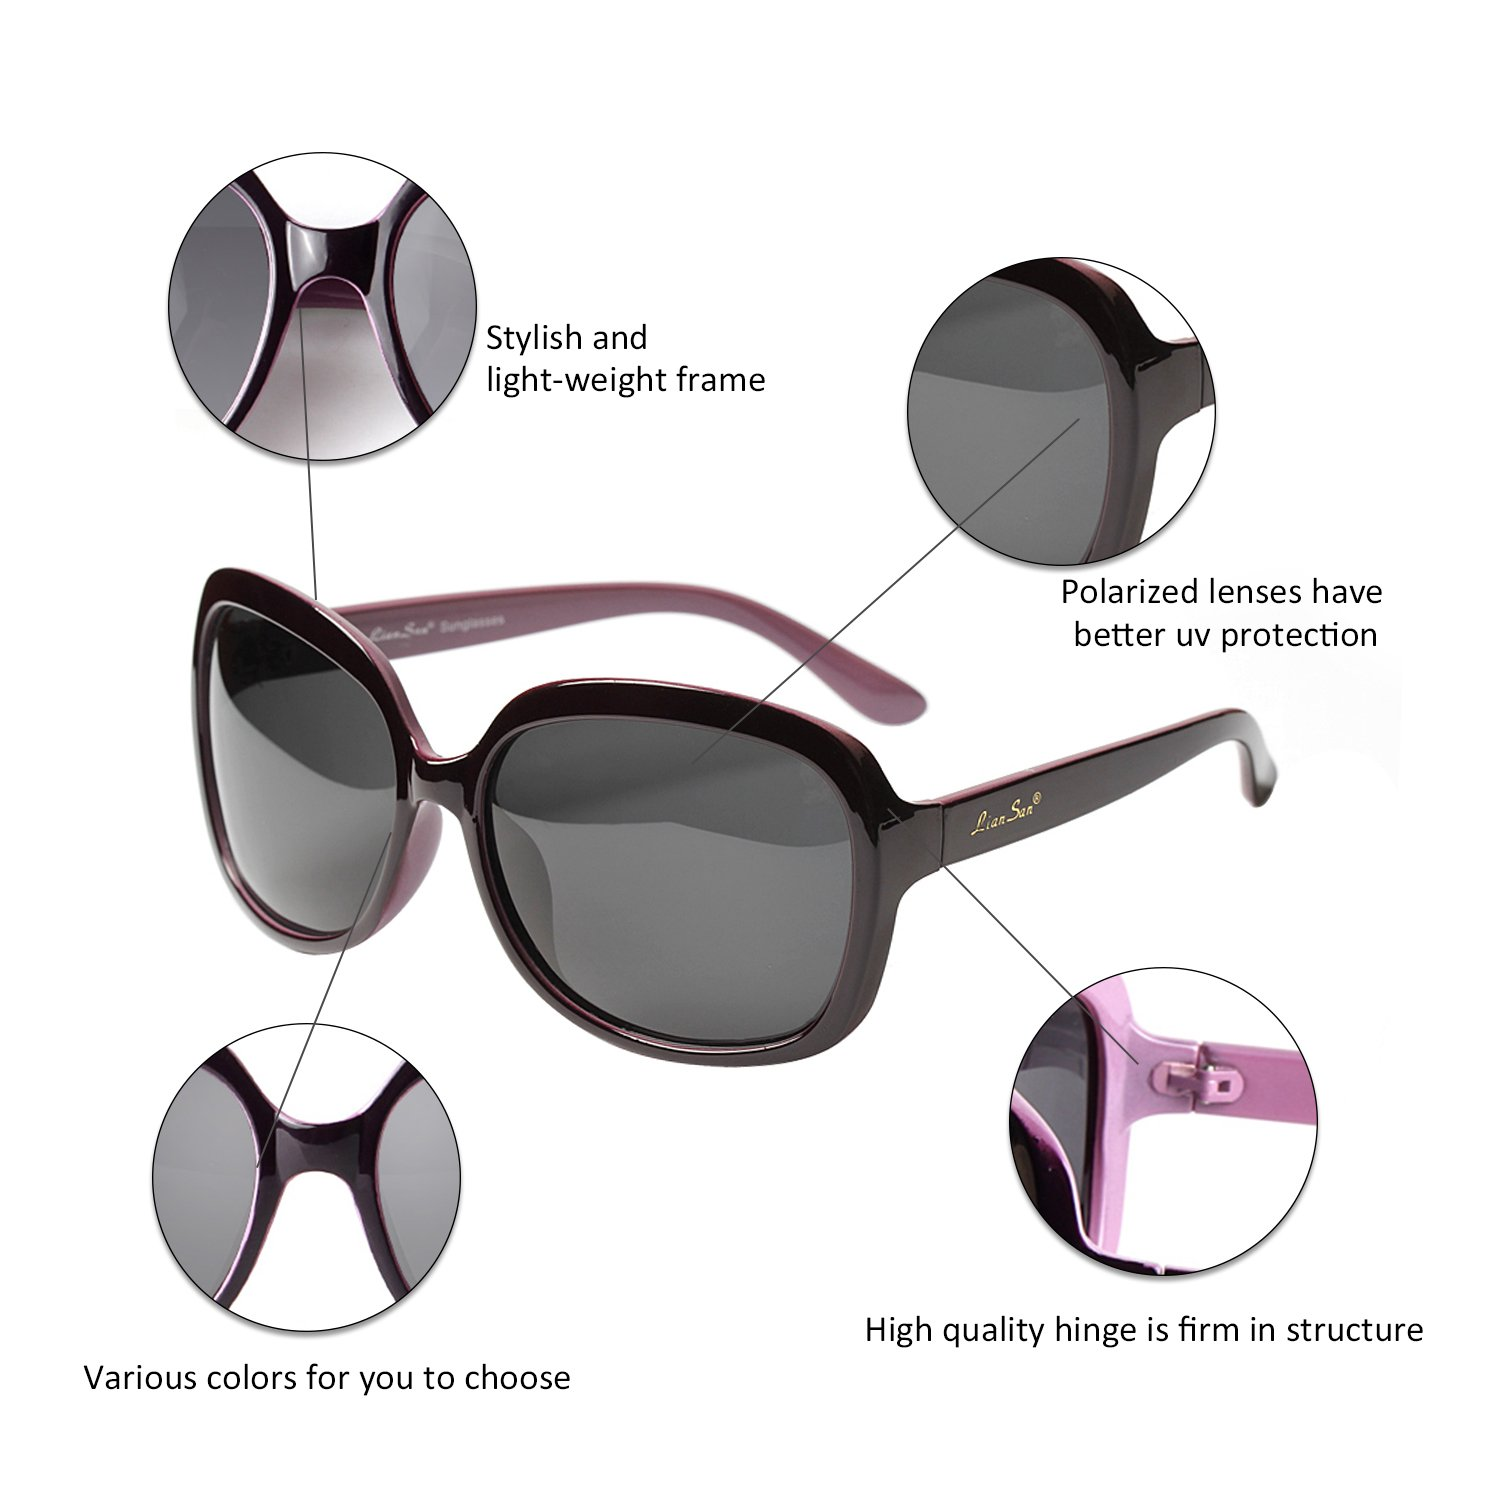 5d43140b1bc89 LianSan Oversized Womens Sunglasses Polarized uv Protection Simple  Sunglasses LSP301 (Polarized Purple)